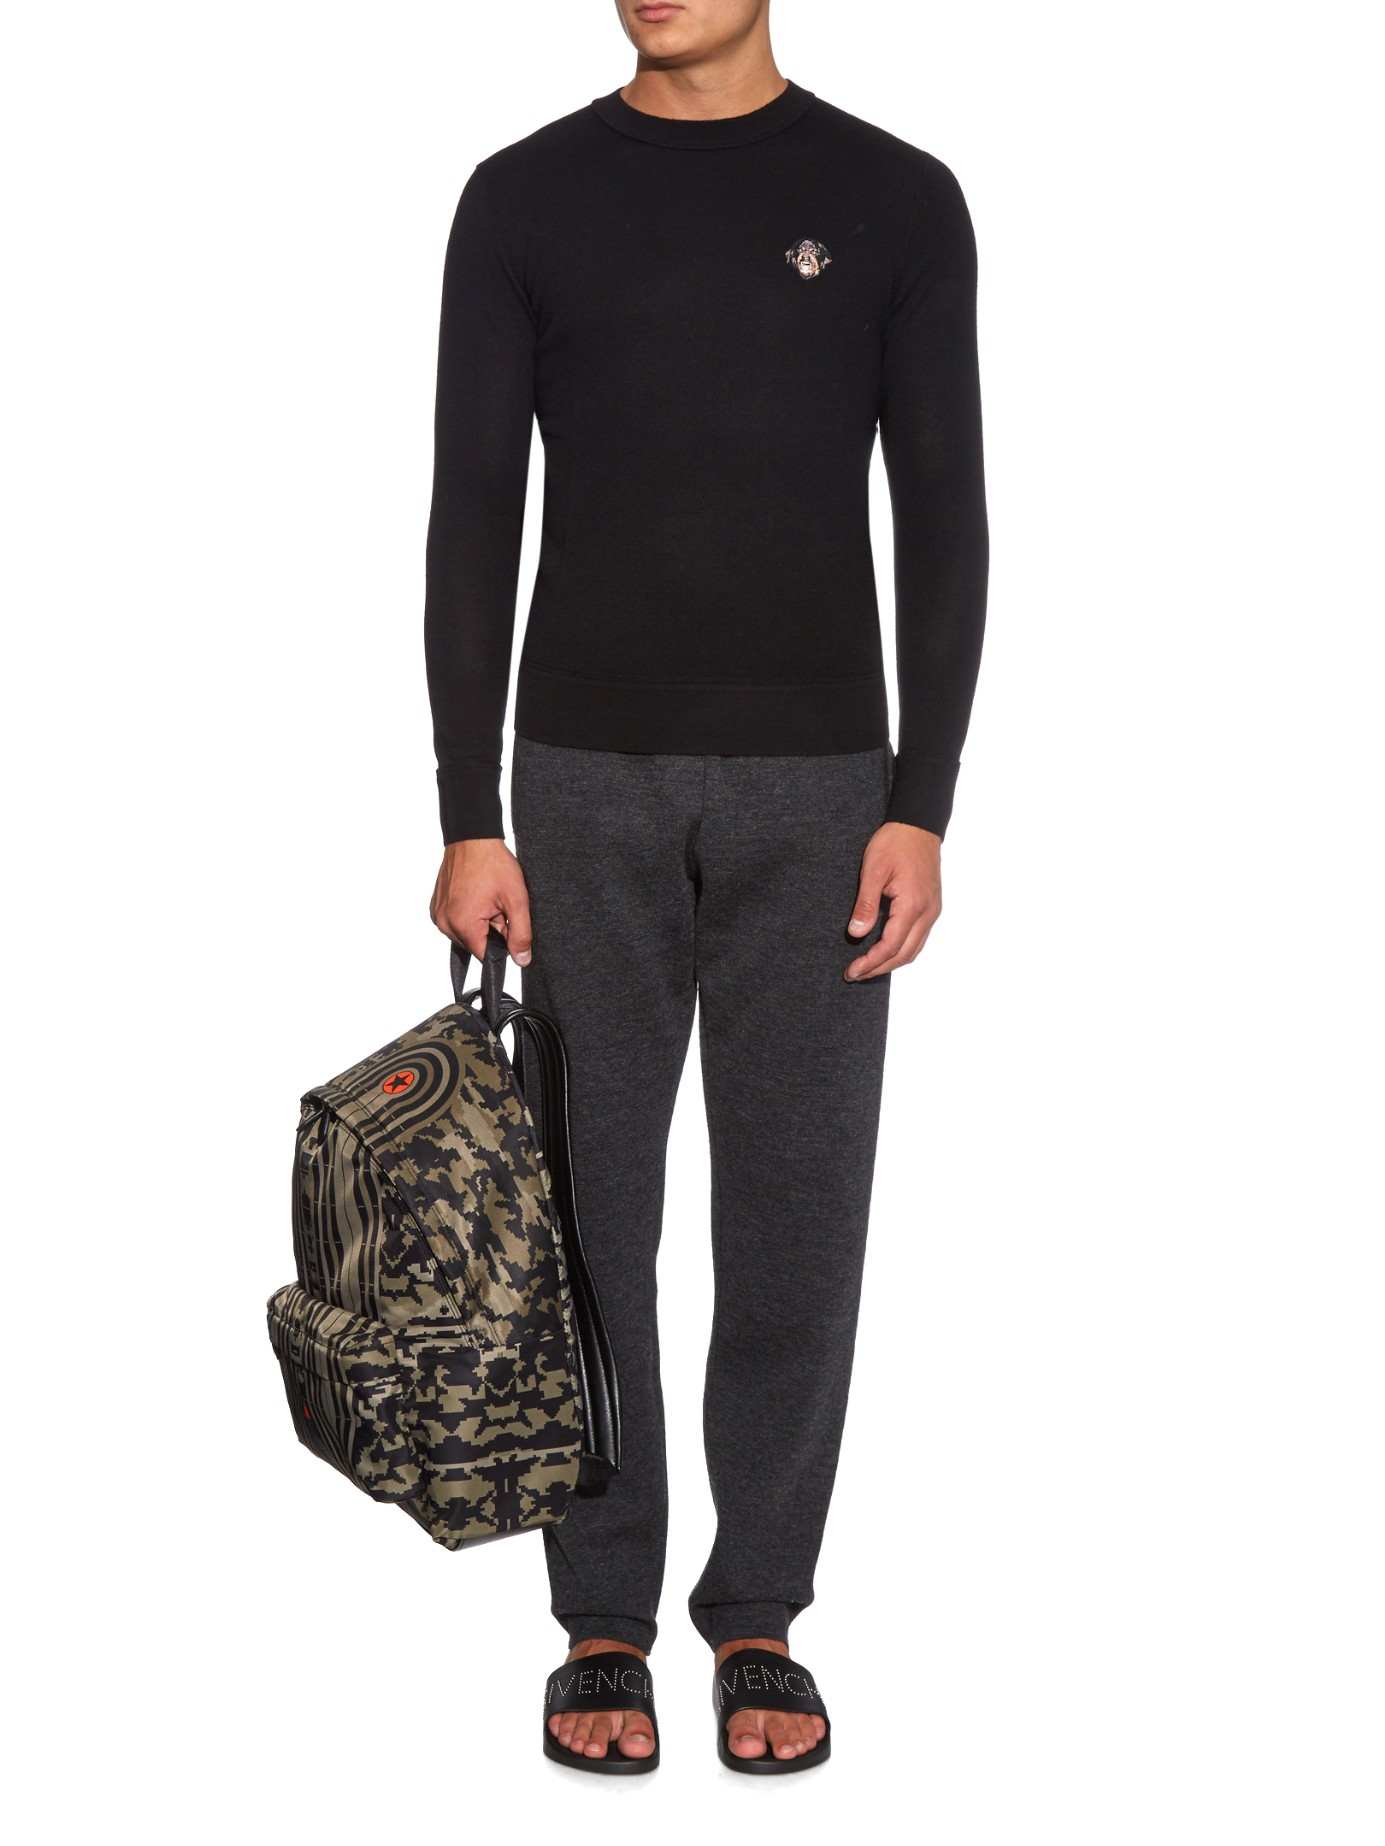 Givenchy Rottweiler Embroidered Wool Sweater In Black For Men Lyst